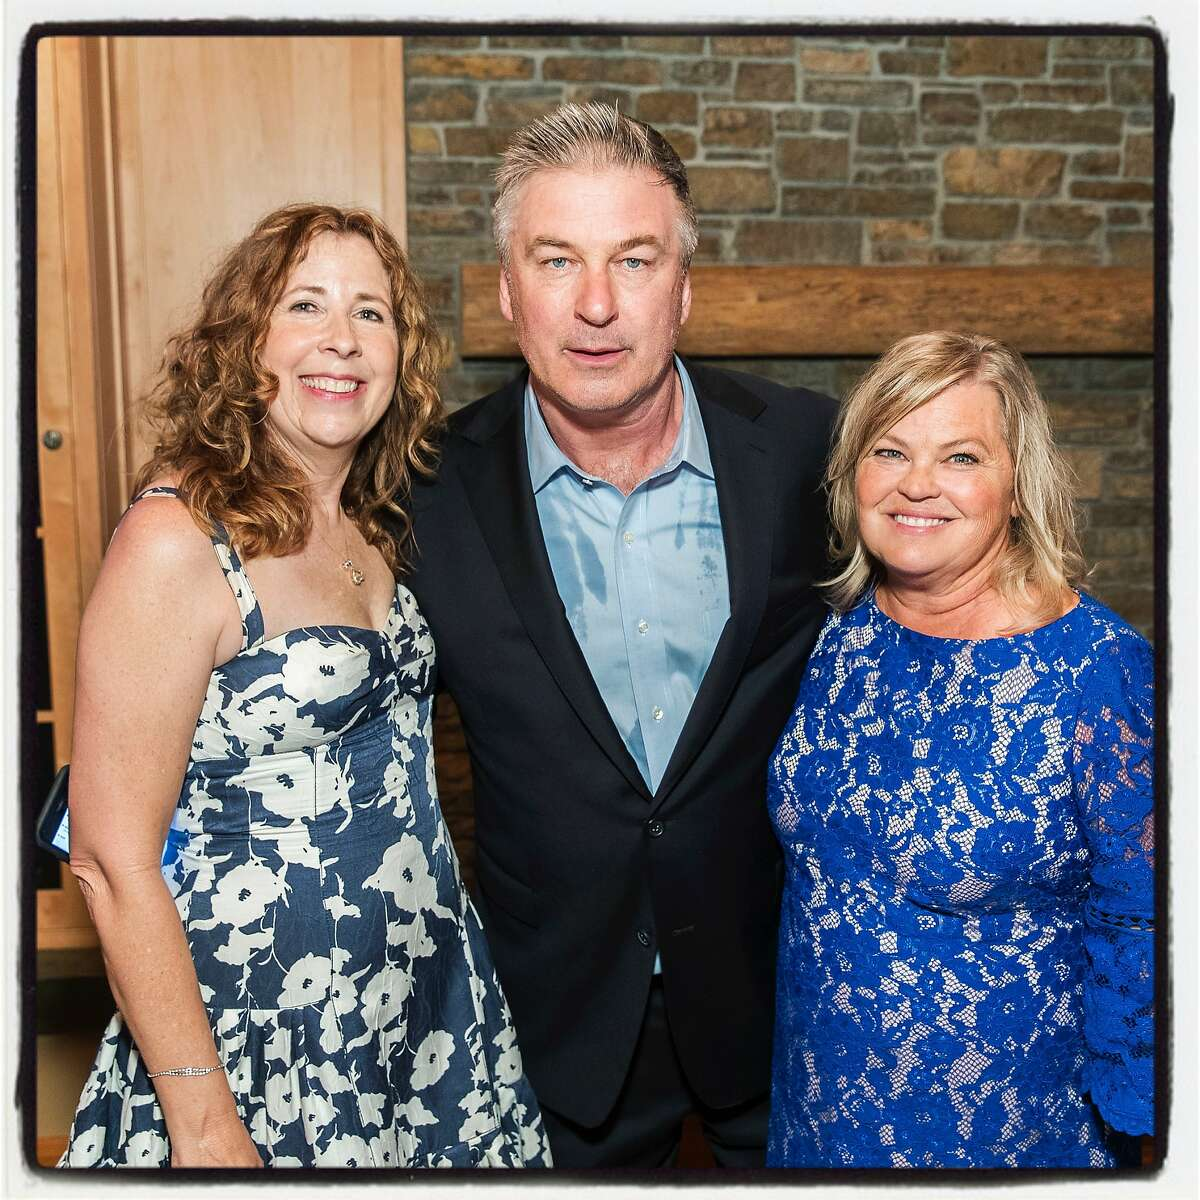 Laure Woods (left) with actor Alec Baldwin and Bay Area Lyme Foundation Director Linda Giampa at the LymeAid fundraiser. May 21, 2017.